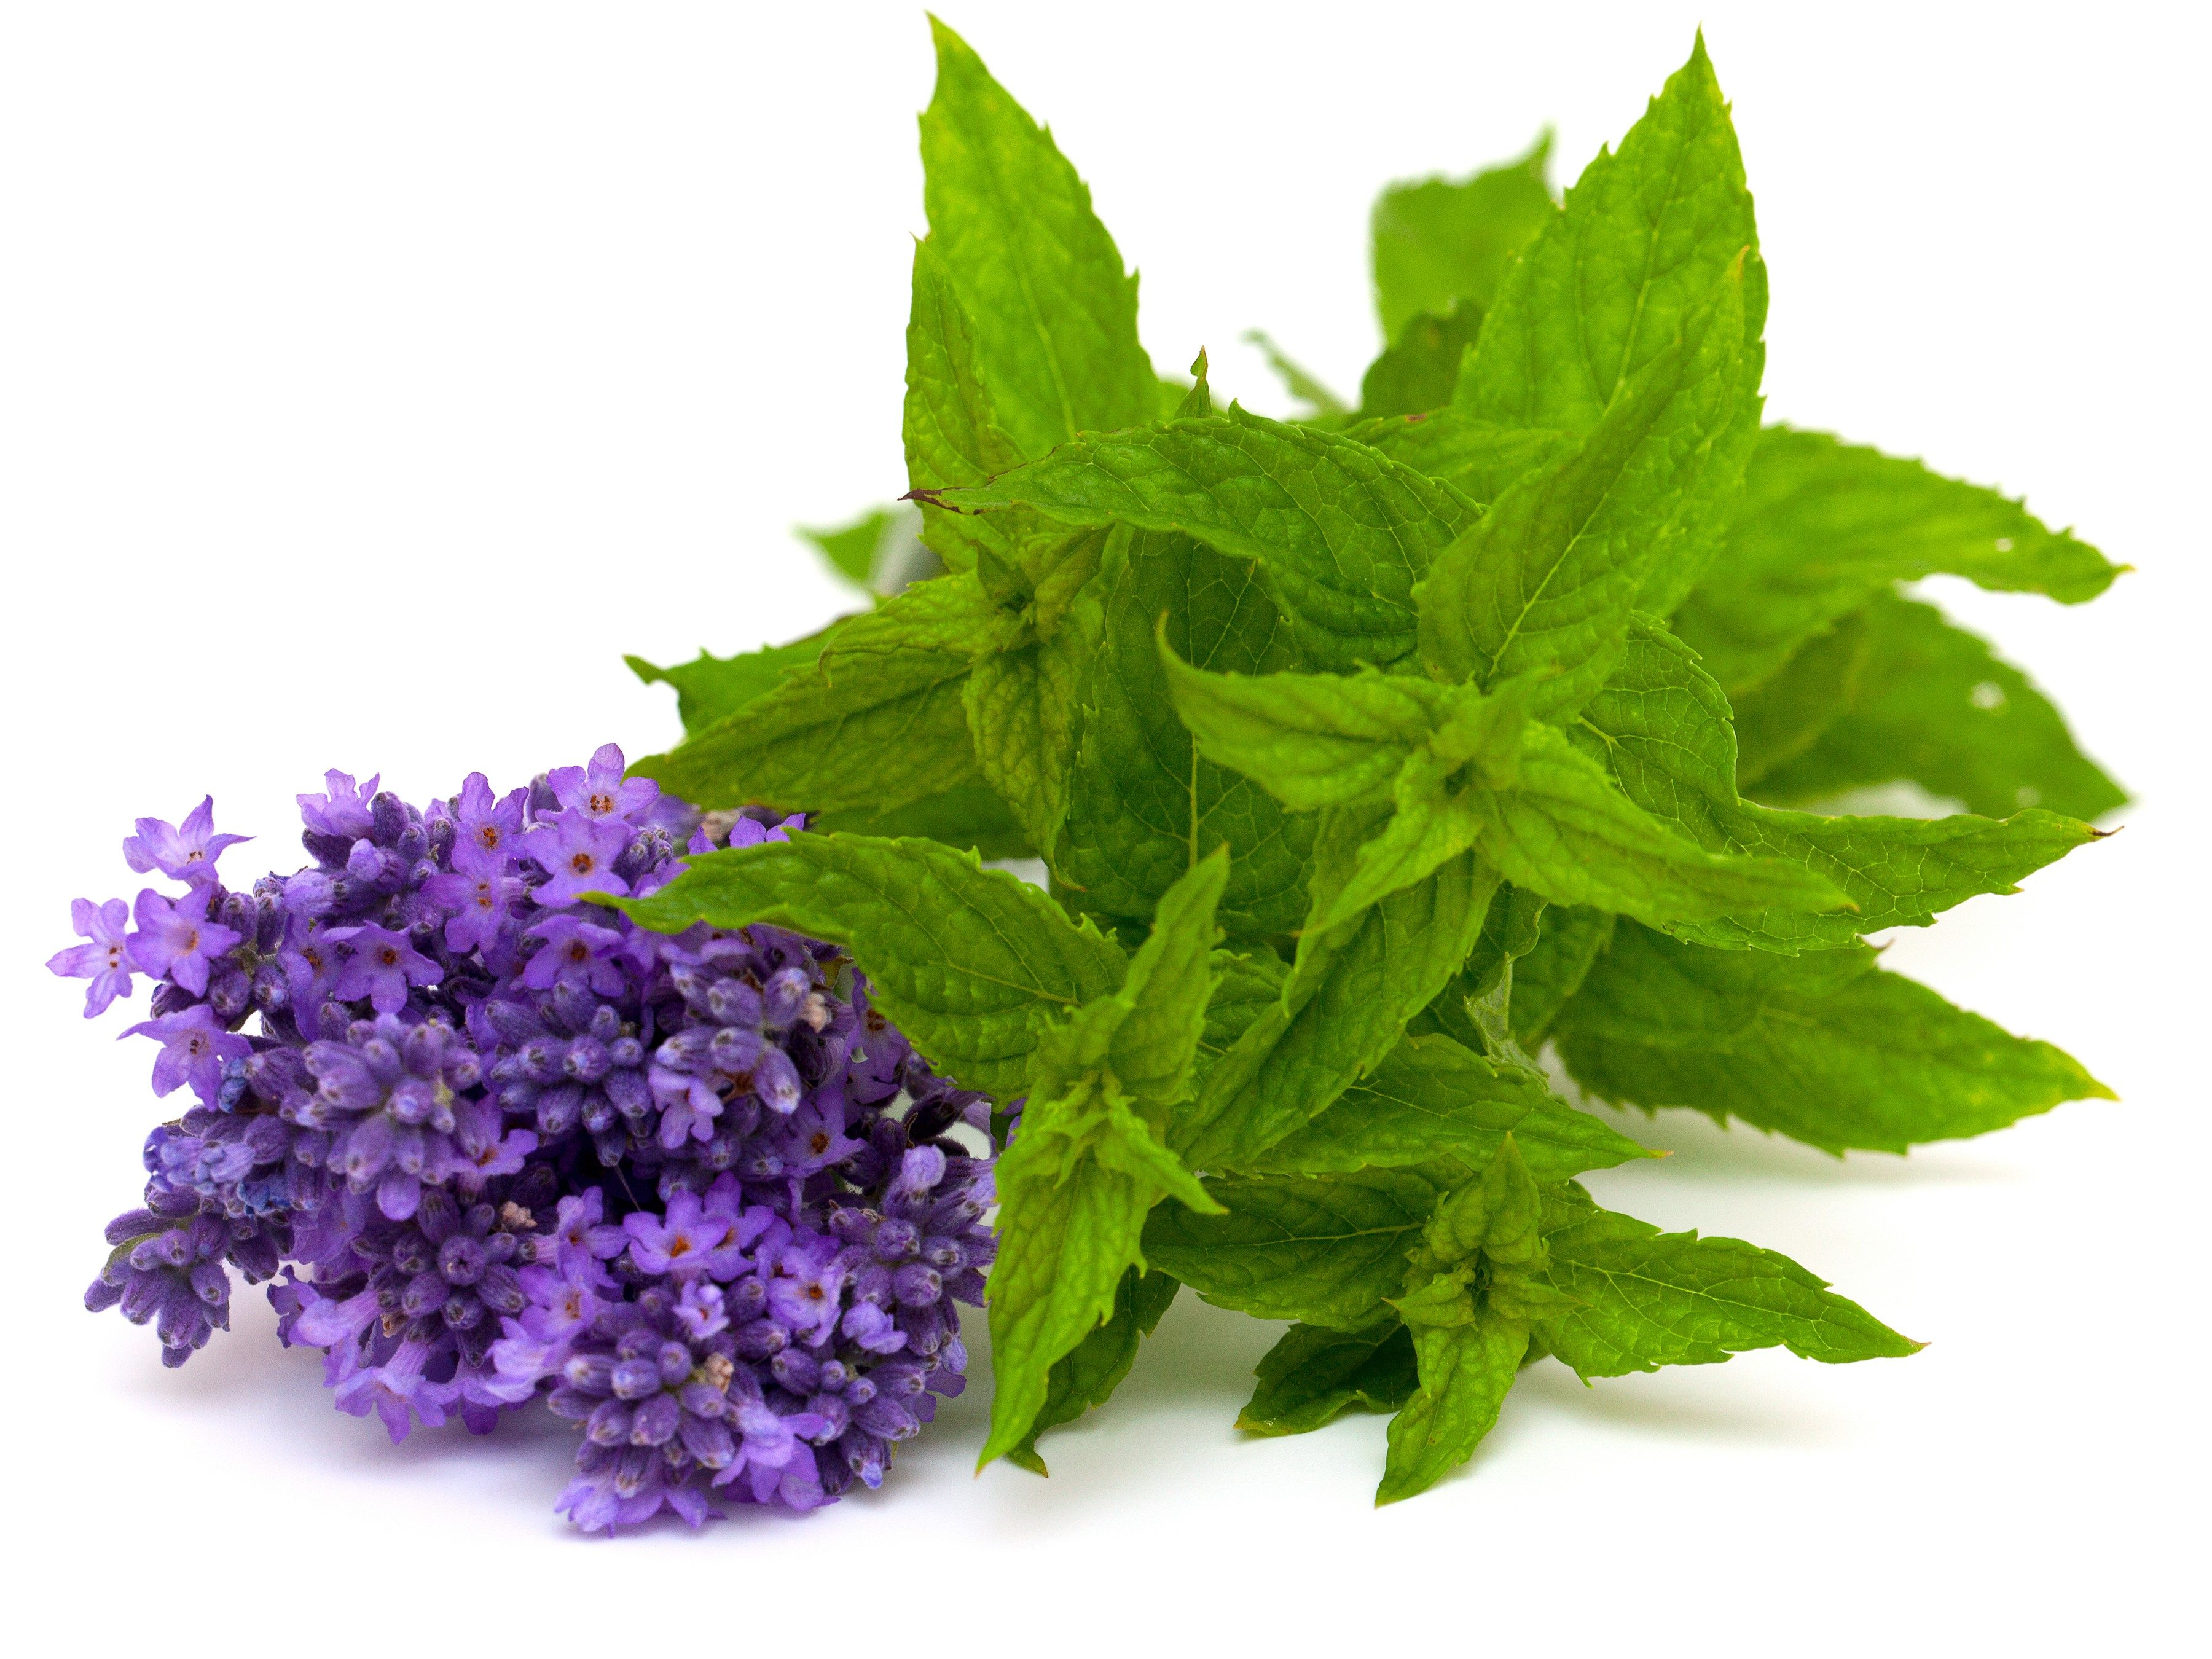 3. Peppermint and lavender essential oils